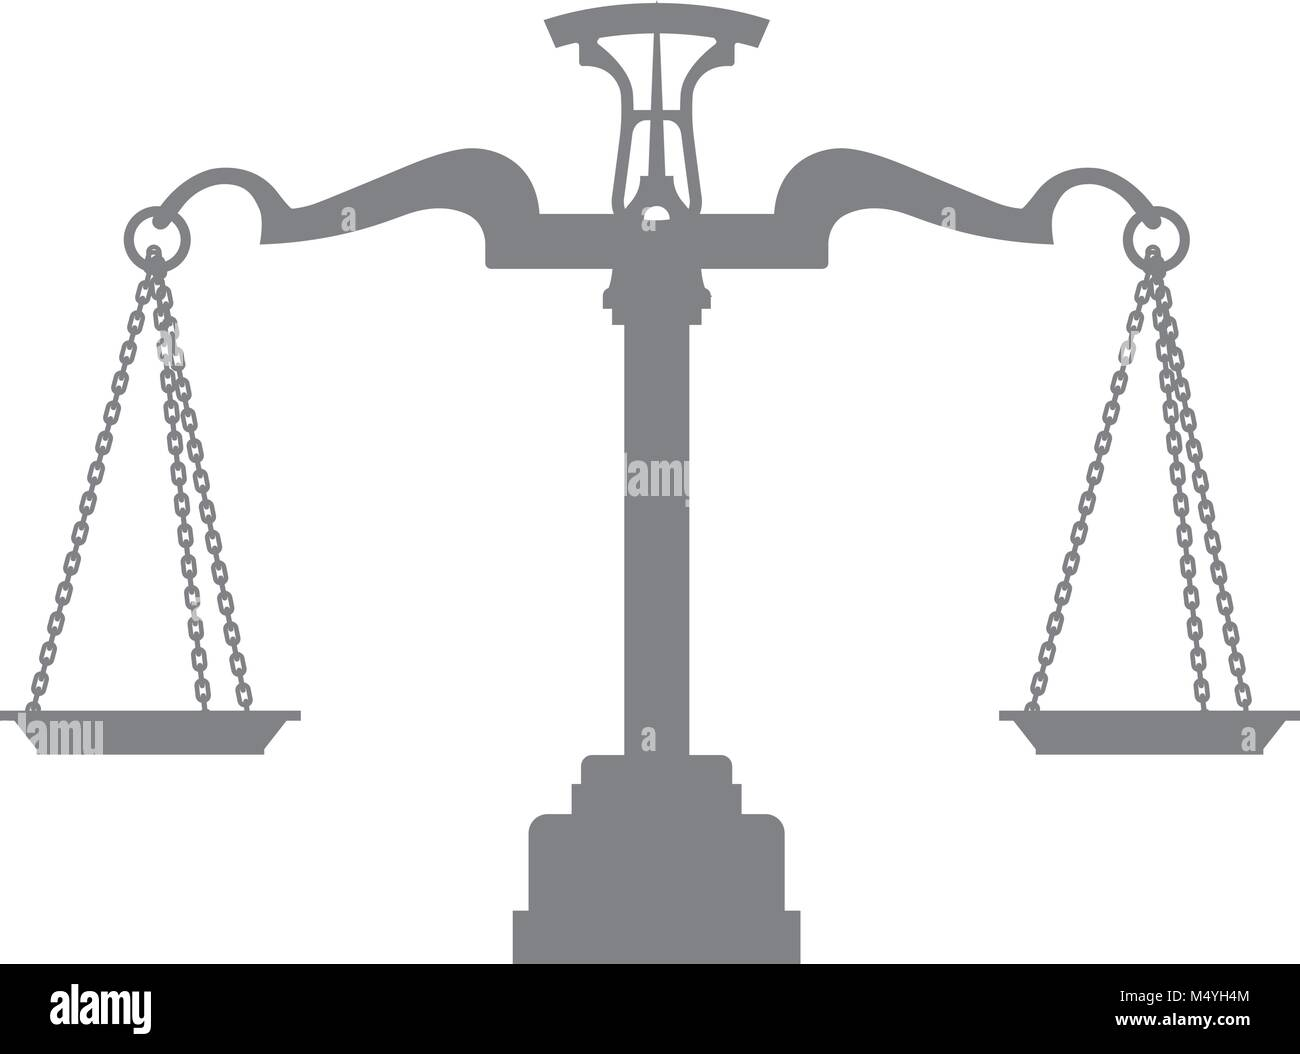 Silhouette Of Scales Of Justice Balance Symbol Of Legal System